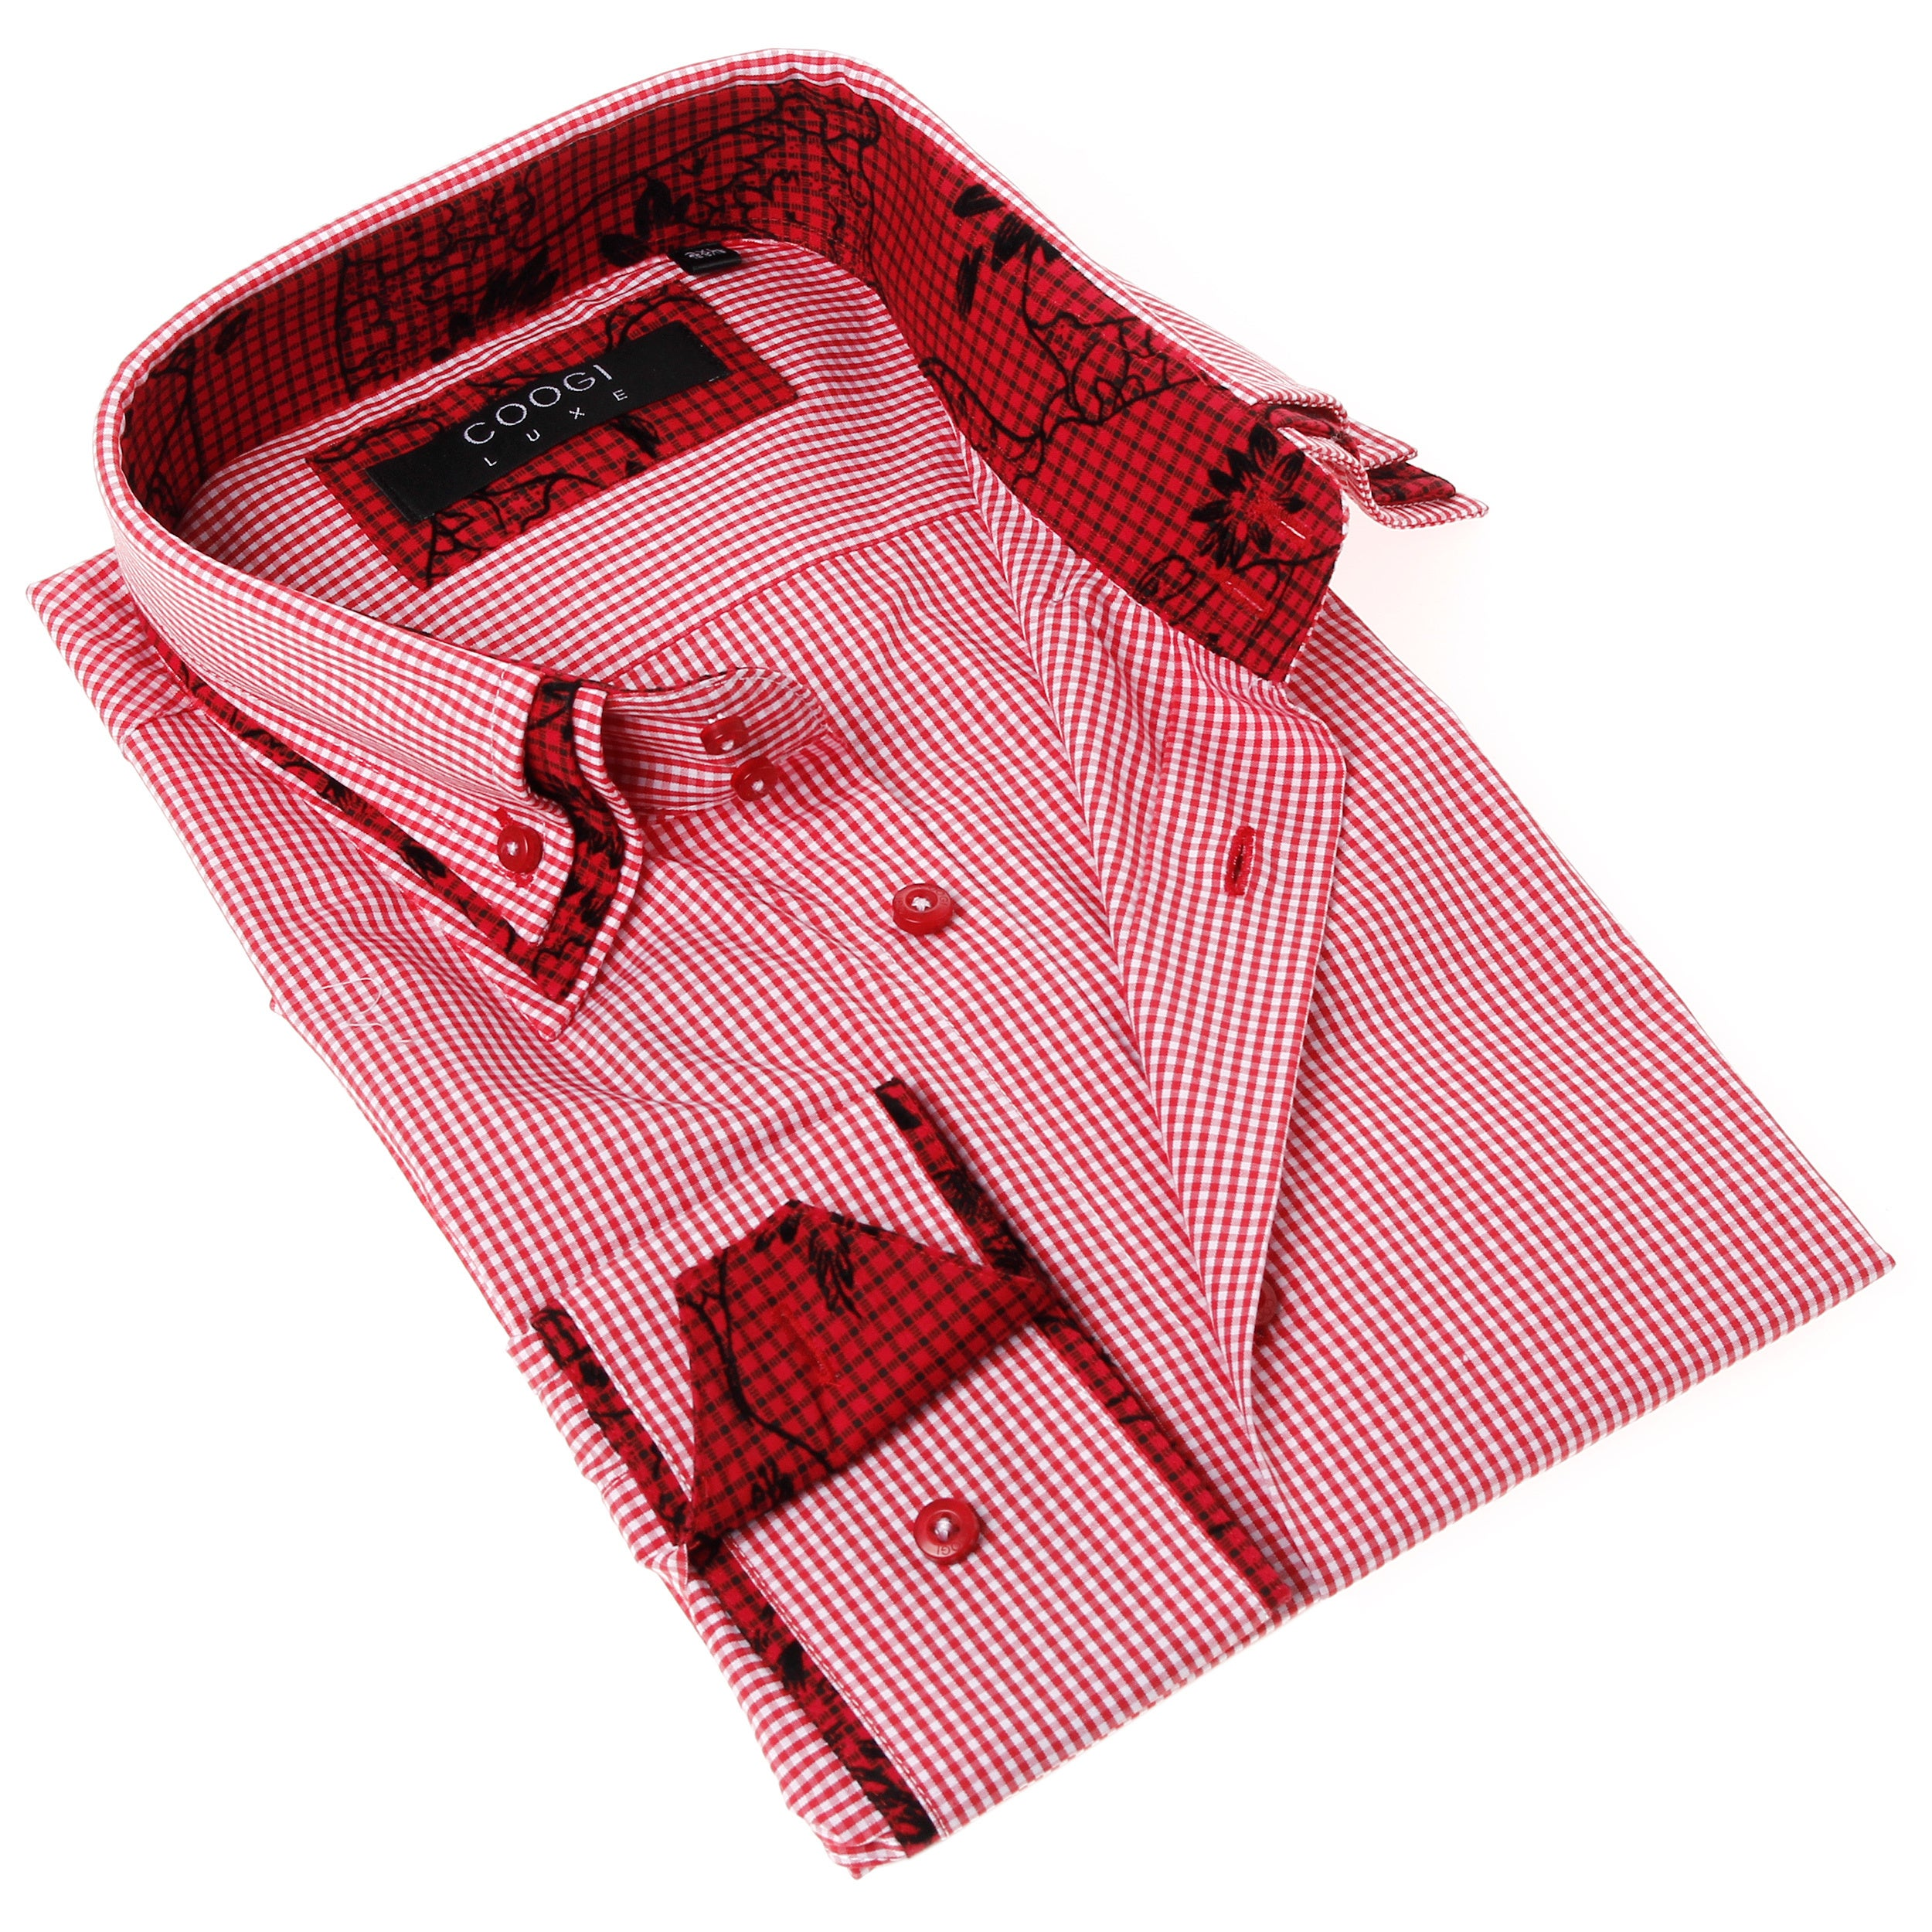 Shop Coogi Luxe Mens Red And White Gingham Button Up Dress Shirt